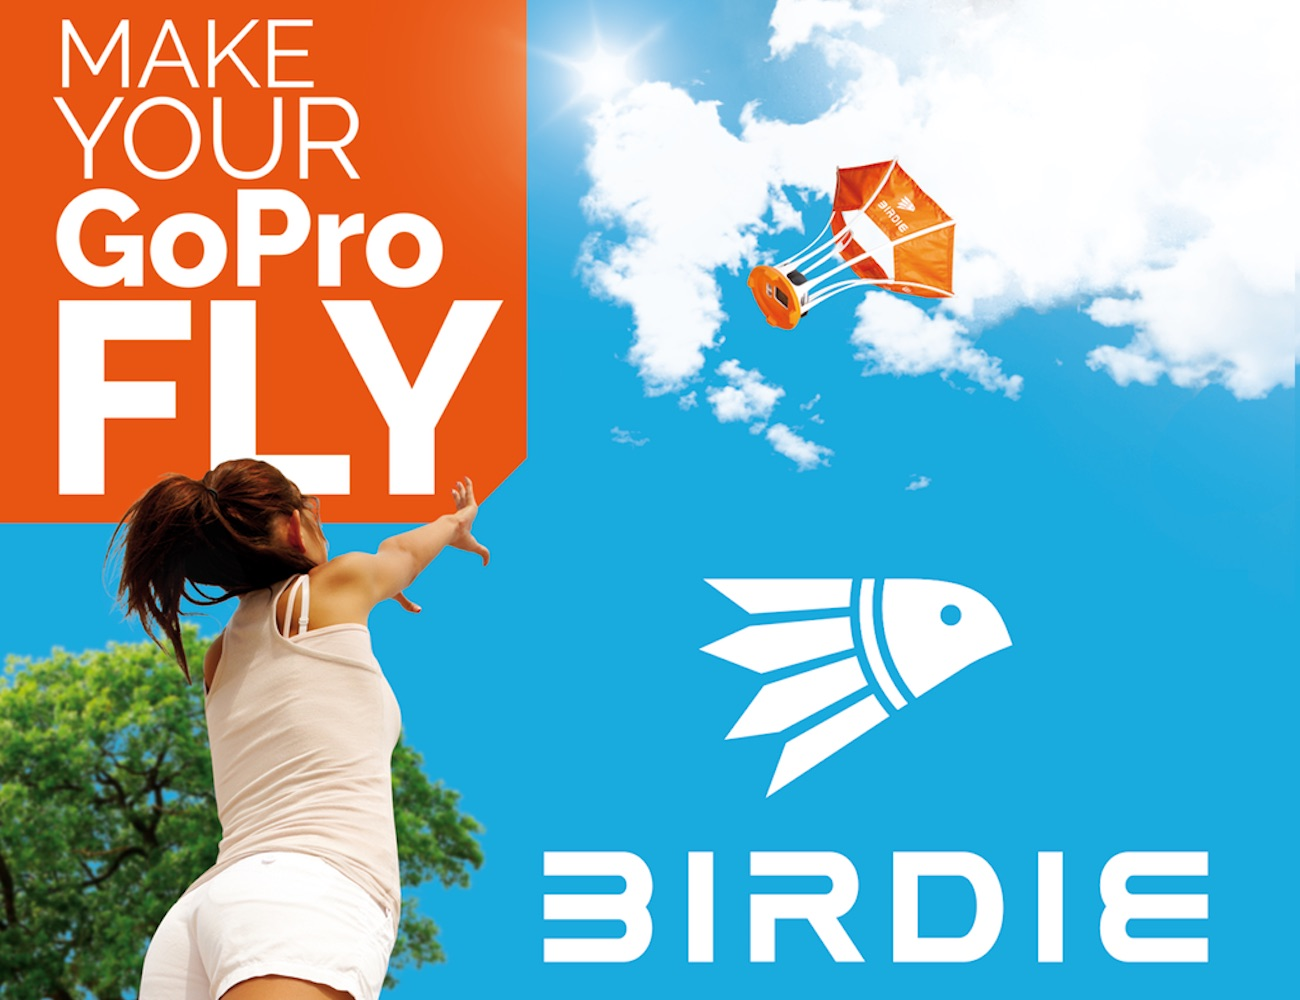 Birdie – Make Your Camera Fly!